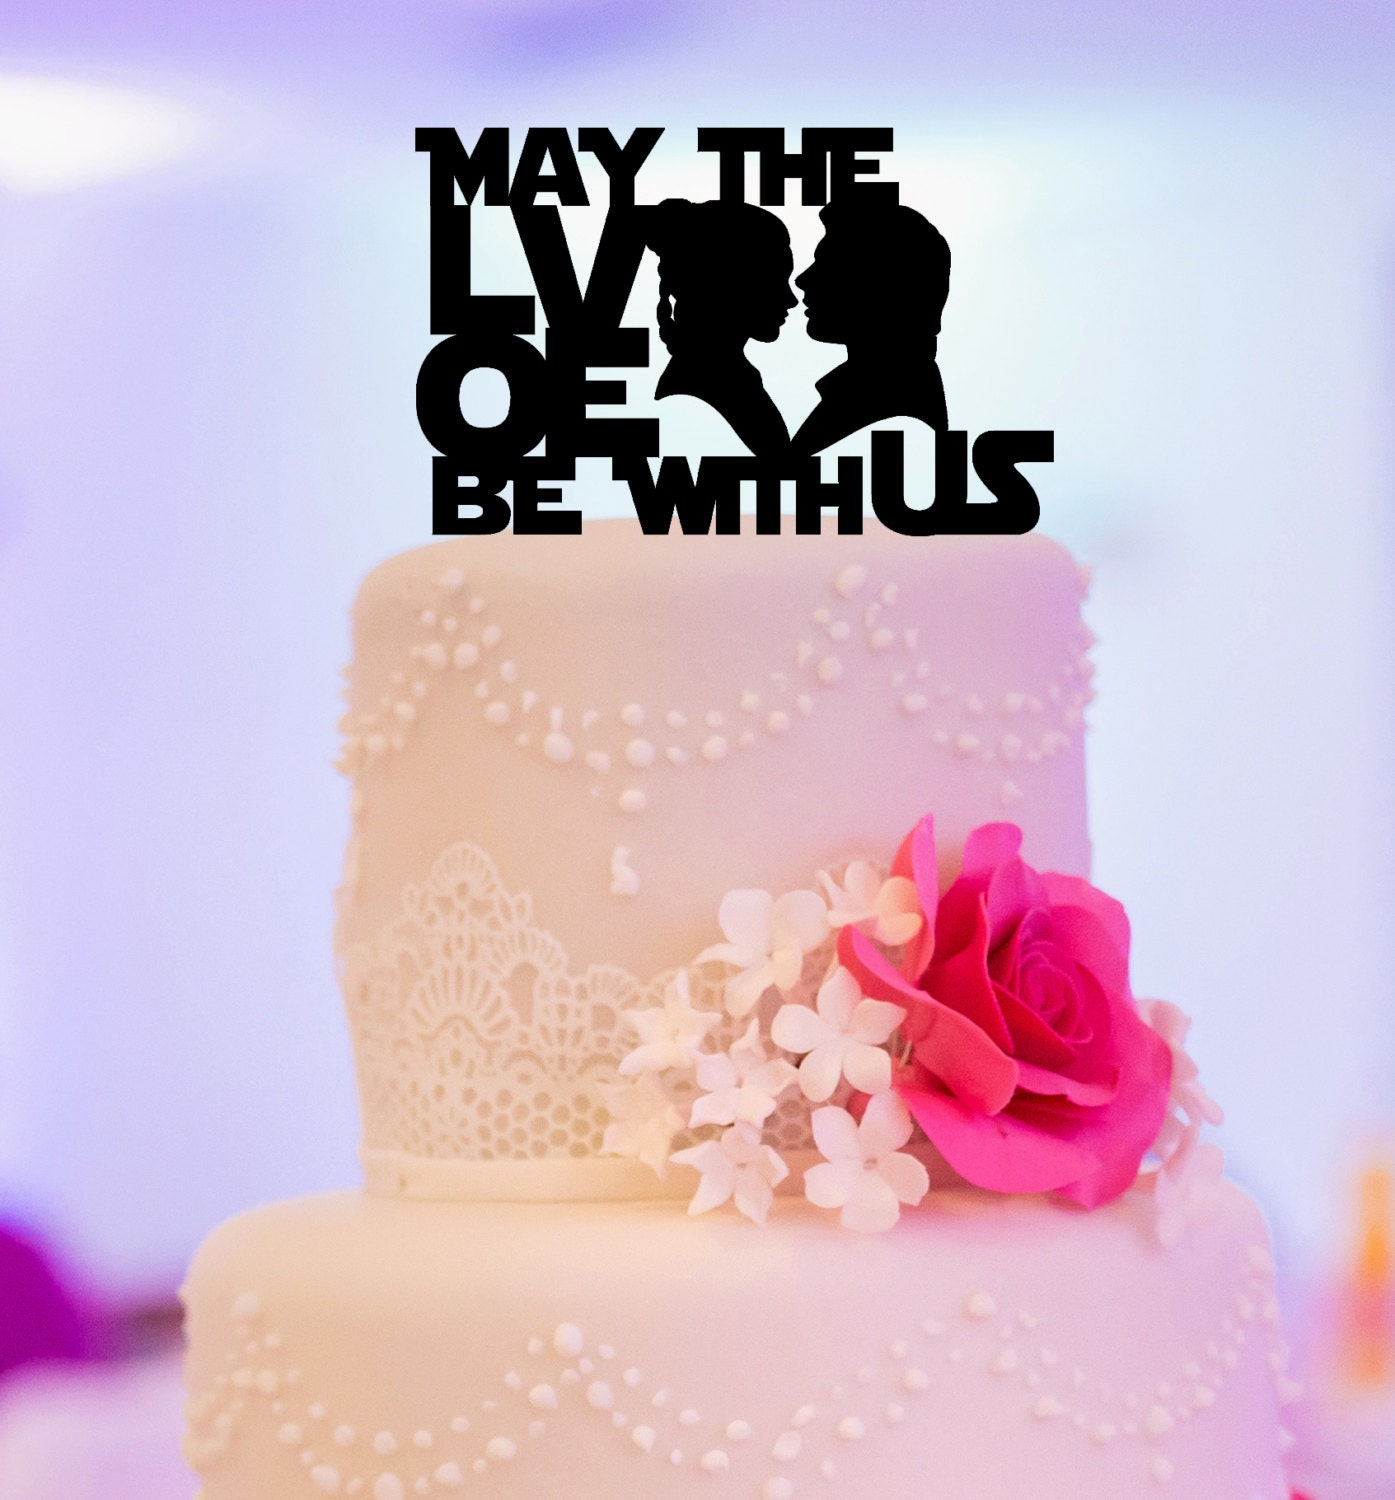 Star Wars Inspired Wedding Cake Topper. May the love be with | Etsy